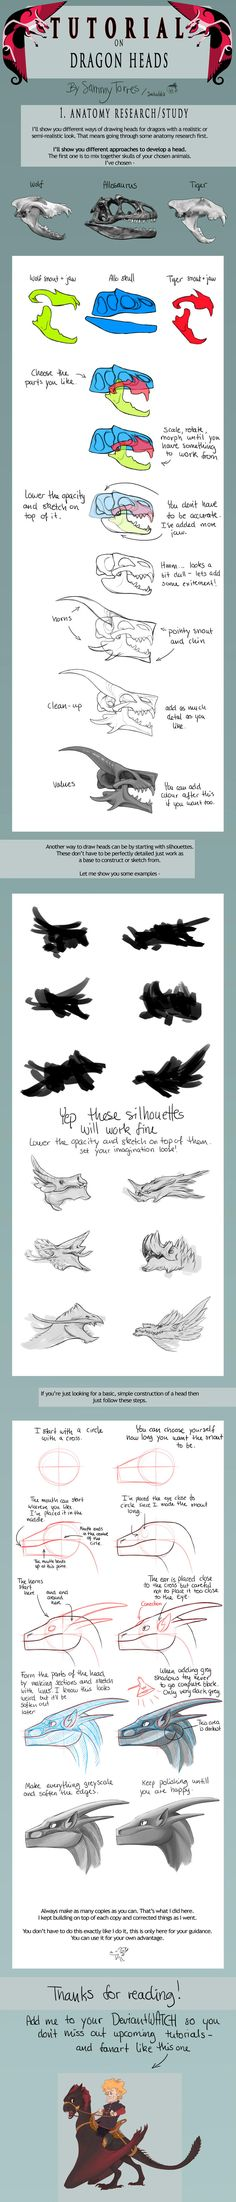 35 super Ideas for drawing dragon head character design – Character Design Dragon Head, Dragon Art, Dragon Horns, Anime Art Fantasy, Anatomy Reference, Drawing Reference, Design Reference, Drawing Techniques, Drawing Tips